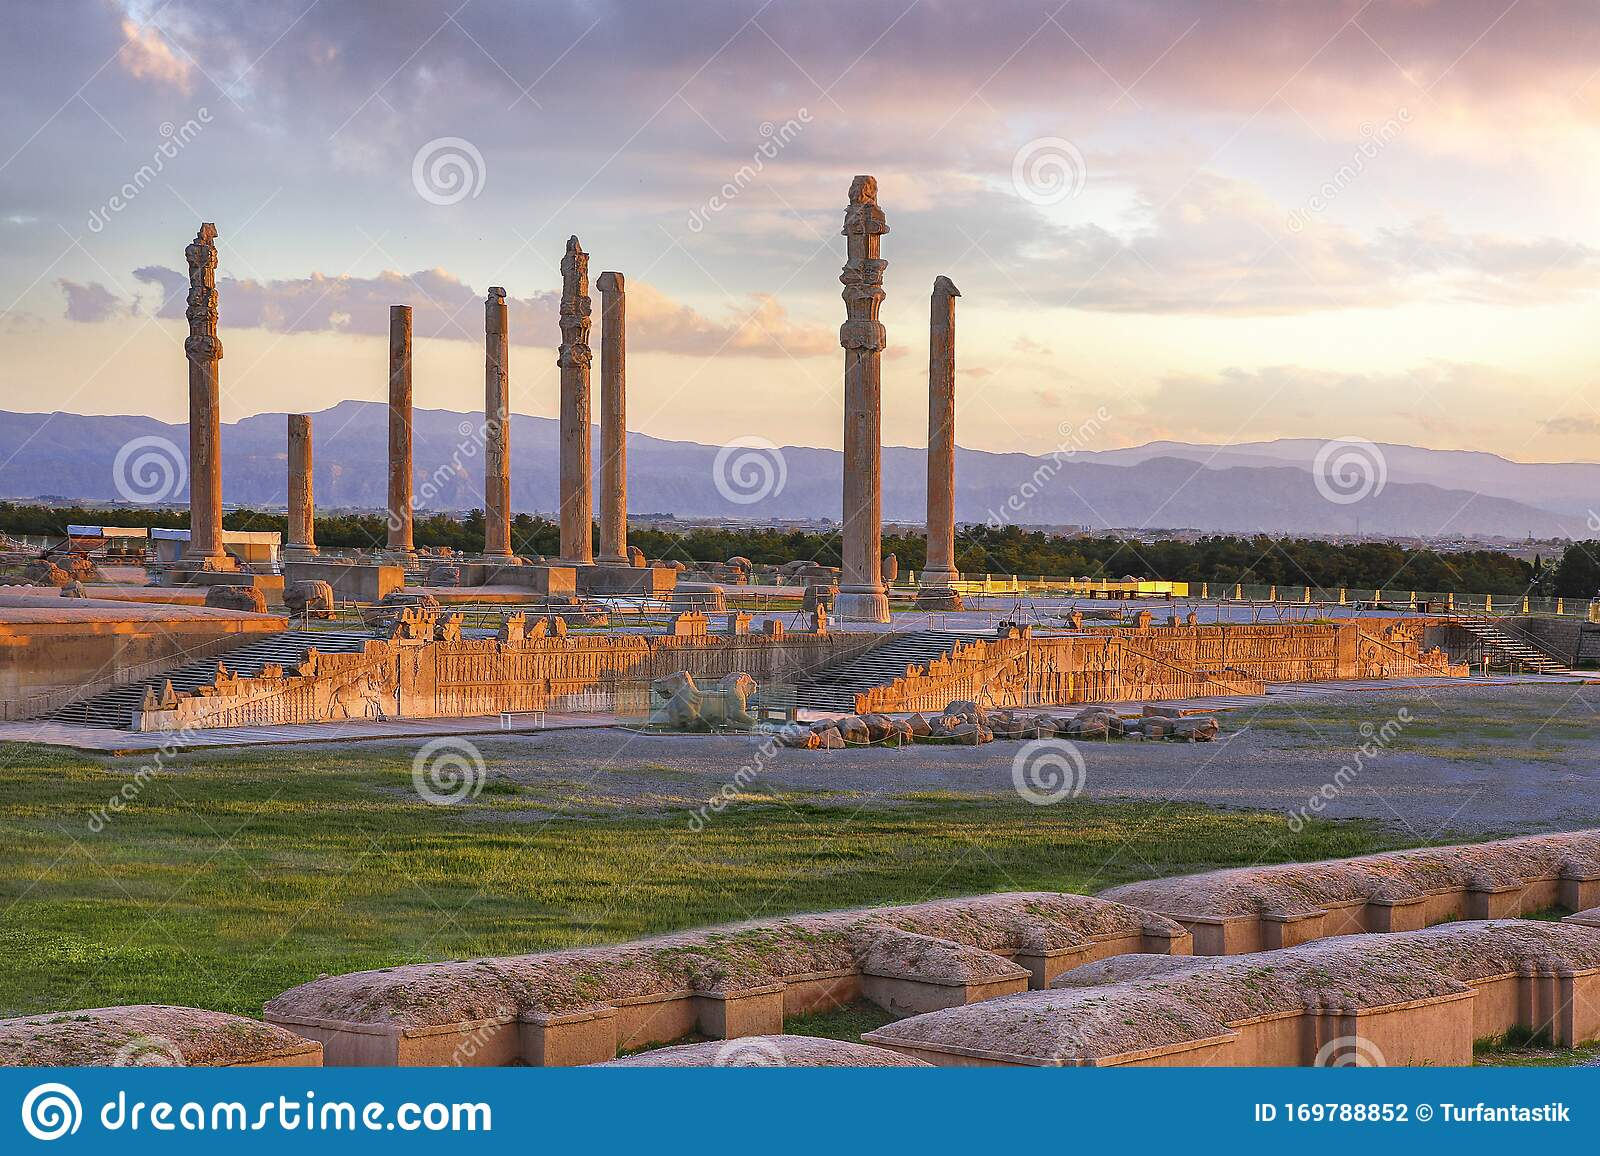 Remains Of The Persian City Of Persepolis In Iran Stock Photo Image Of Monumental Heritage 169788852